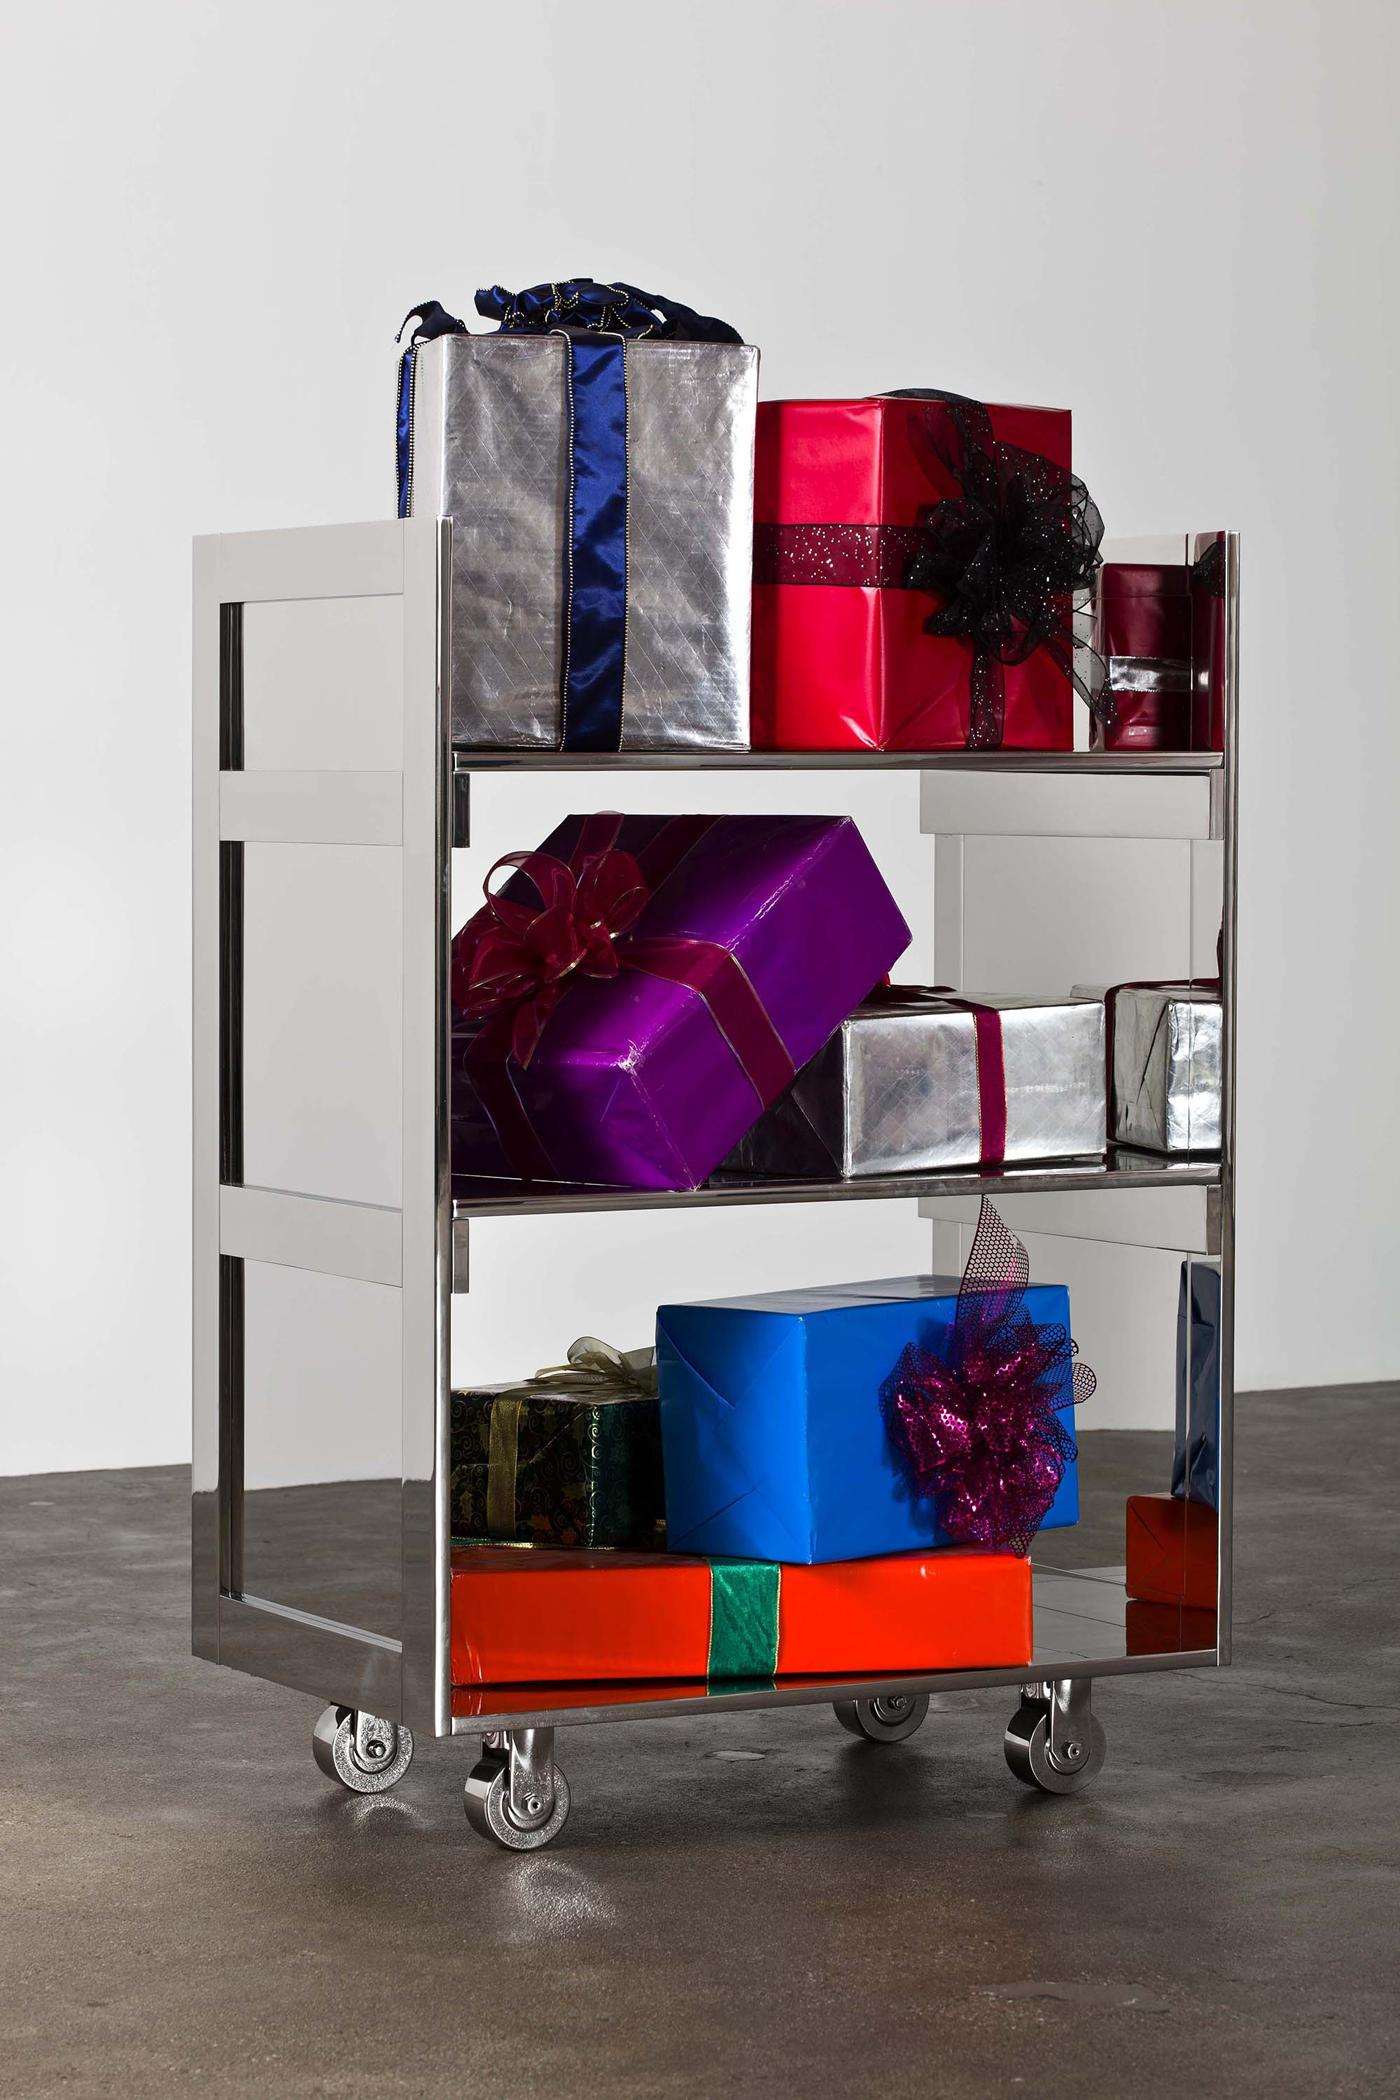 A three-tiered silver metallic cart holds colorfully wrapped gift boxes with bows.